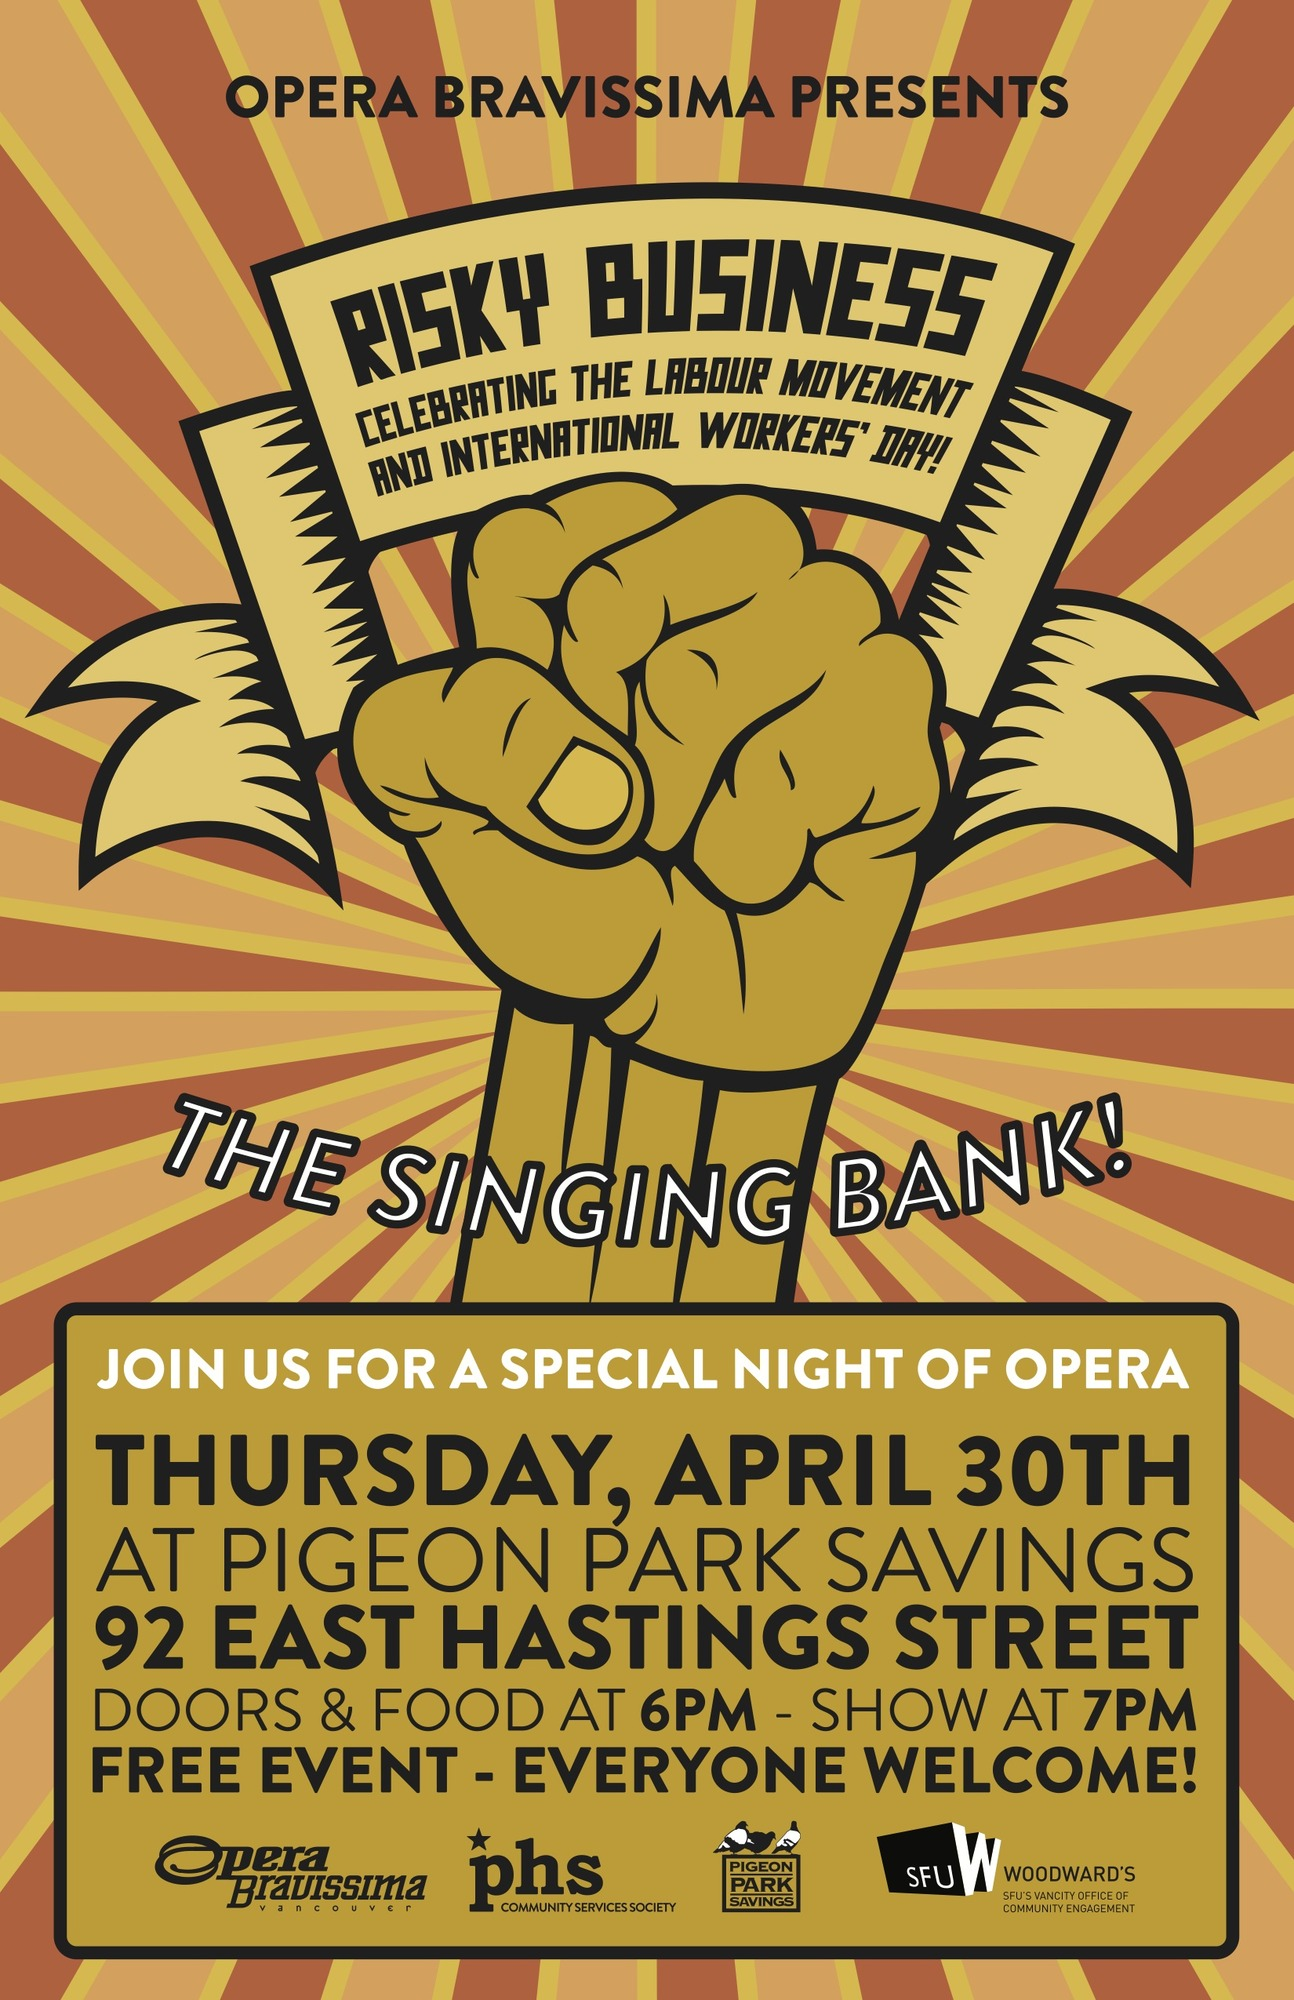 Image: The Singing Bank